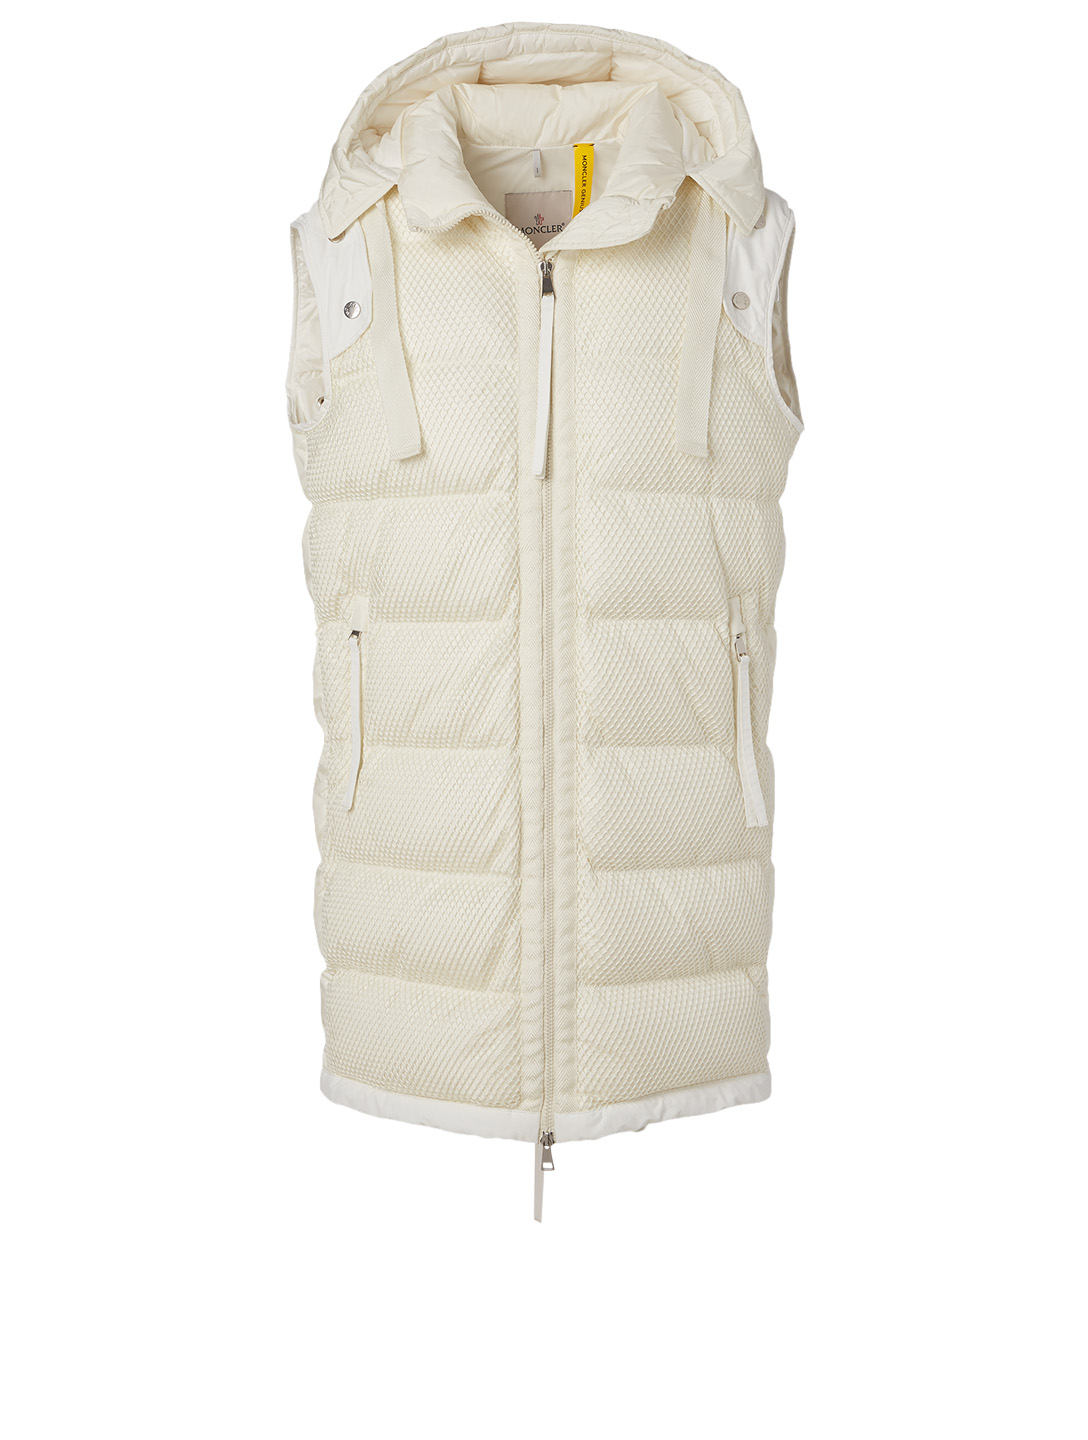 MONCLER GENIUS 2 Moncler 1952 + Valextra Narvalong Down Jacket Women's White